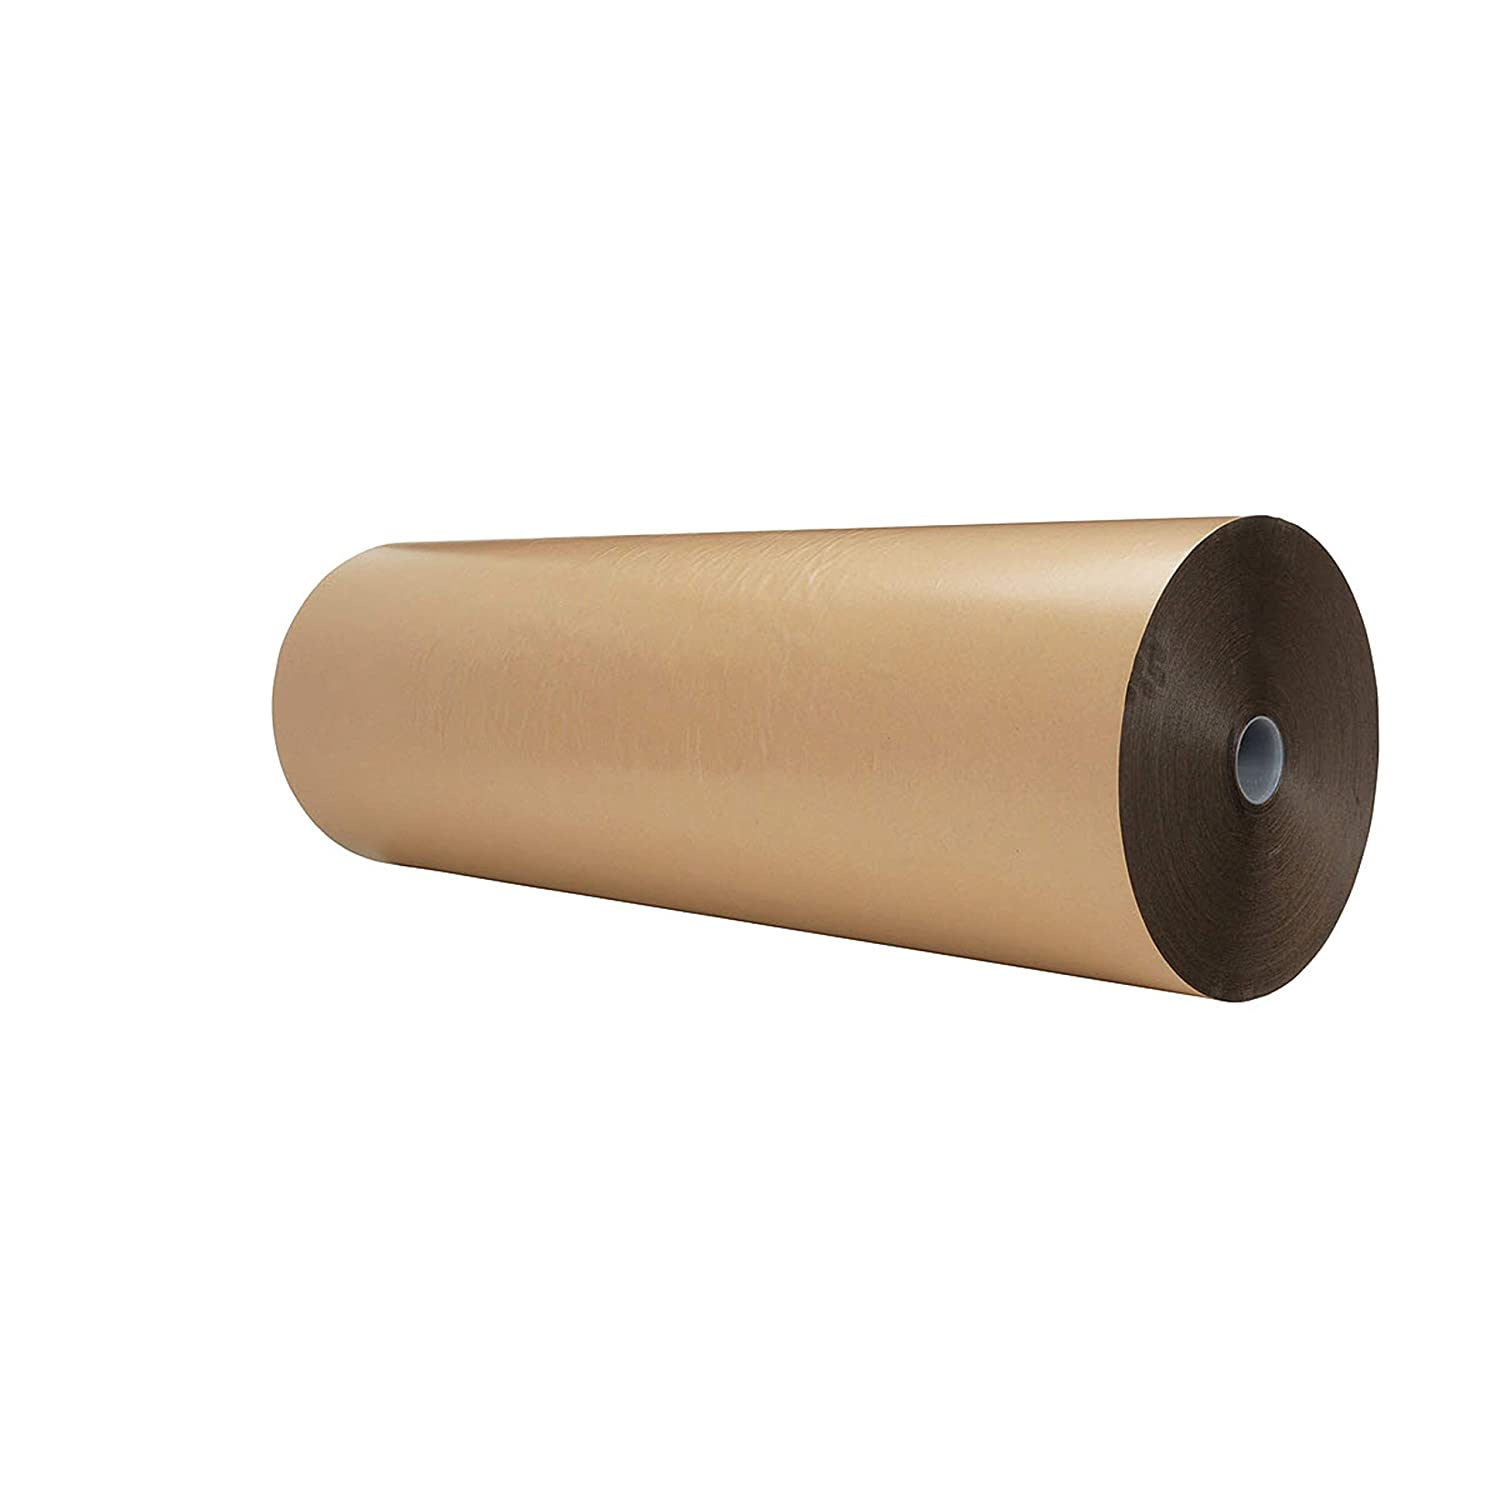 3M Double Coated Milwaukee Mall Polyethylene Foam National products Tape 17 54 Black in x 4492B